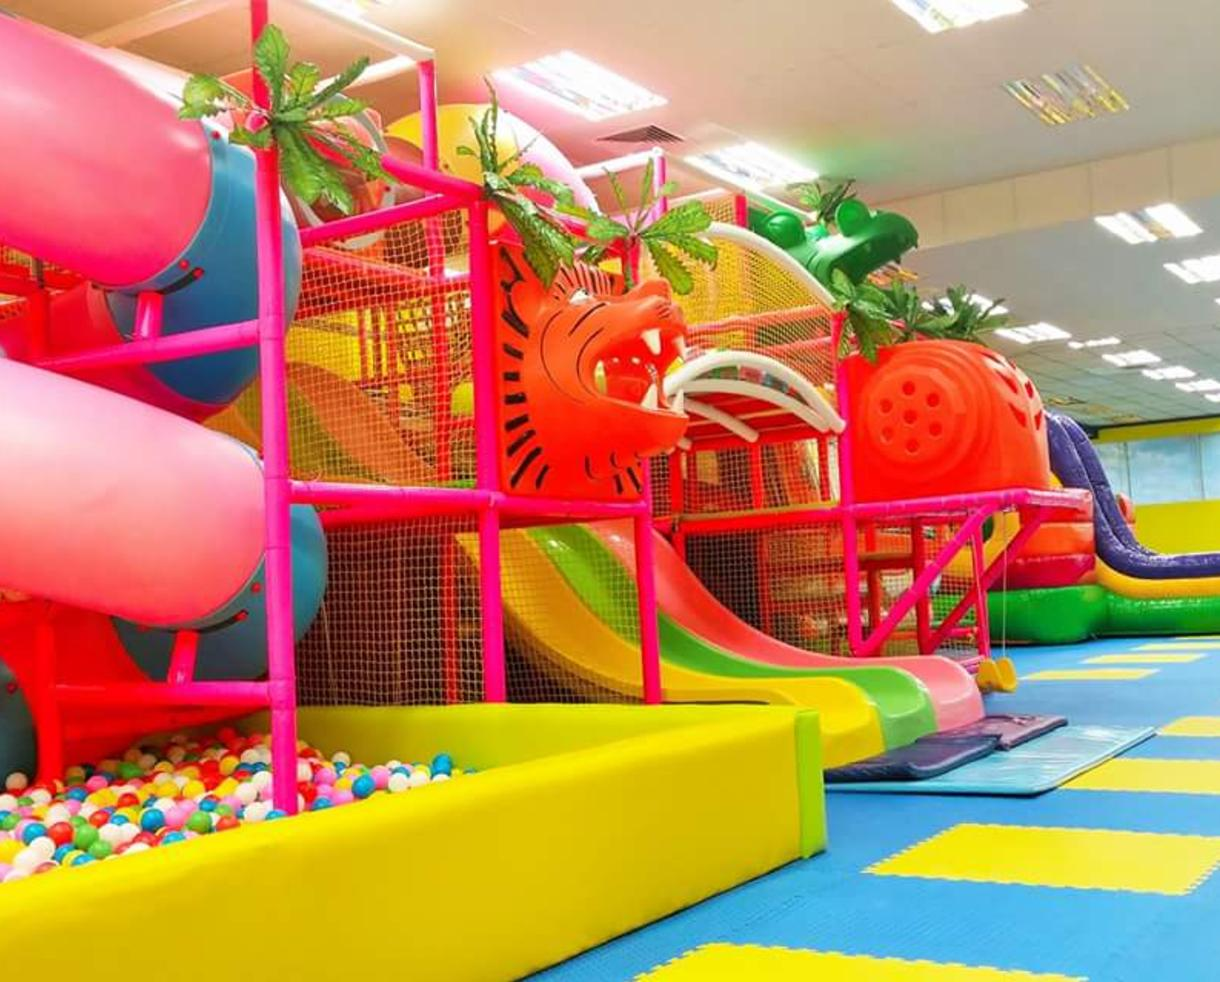 341baa0feb  129 for FunAthon Weekday Birthday Party Ages 12 and Under in Lawrenceville  ( 219 Value - 42% Off)